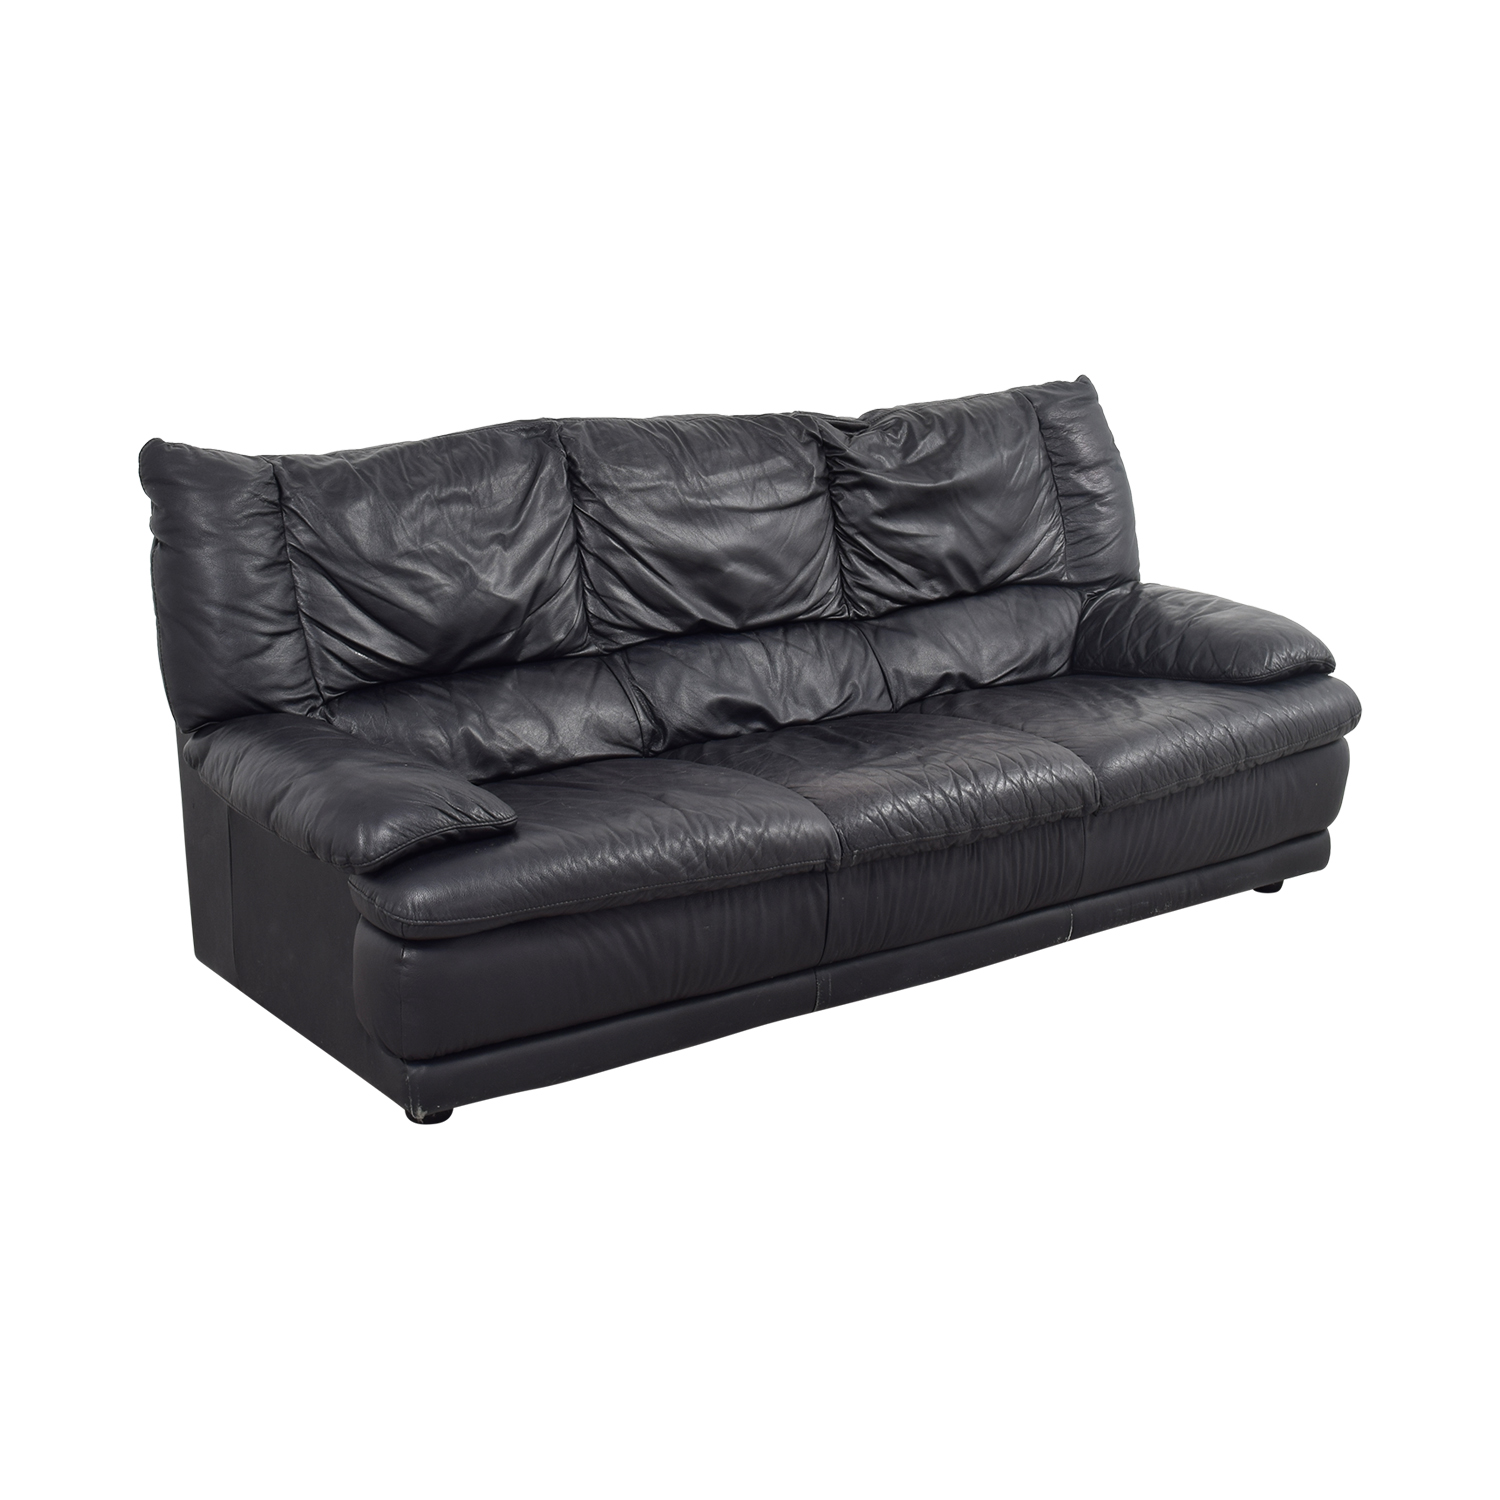 57 off ikea ikea black leather sofa sofas. Black Bedroom Furniture Sets. Home Design Ideas